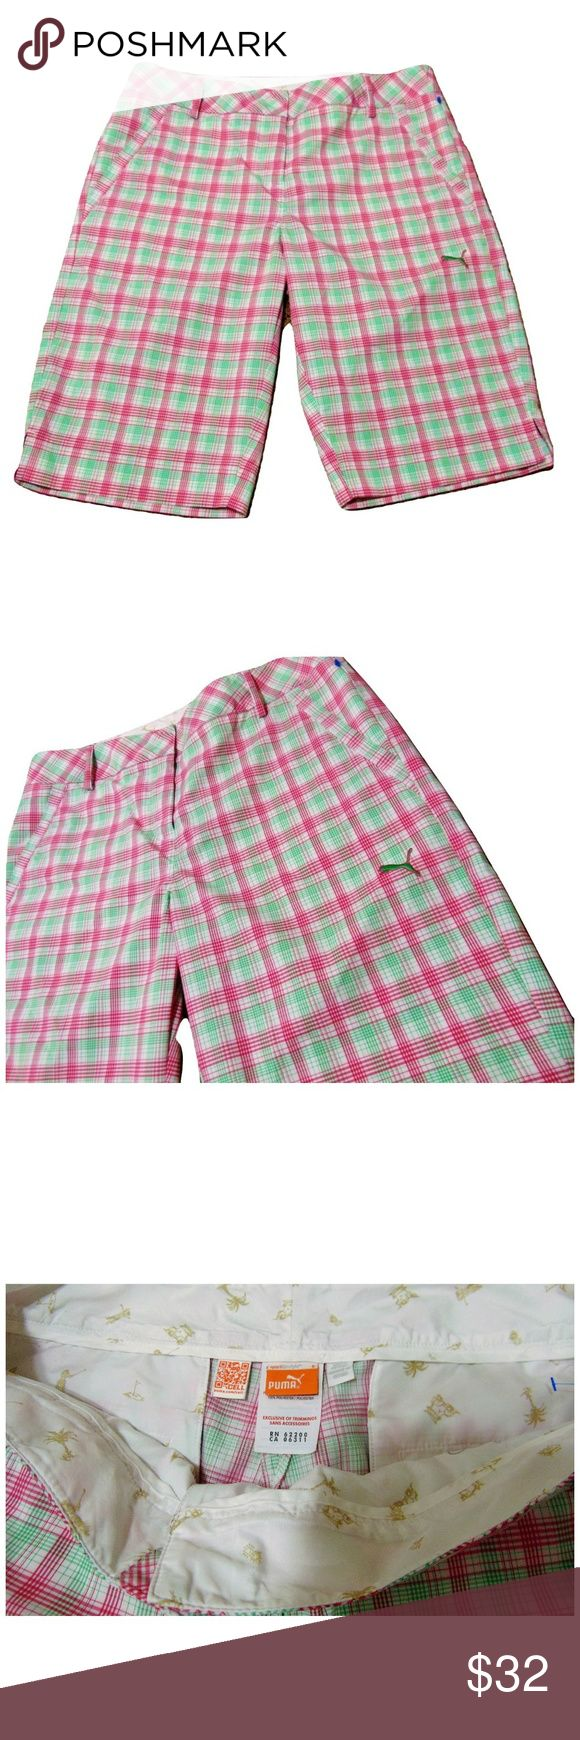 "Womens Puma Pink Green Plaid Bremuda Shorts Includes: 1x Puma Sportlife Golf Shorts  Condition: NWOT  Size: 8  Color: Pink / Green  Design Features: Plaid  Length: 21""  Rise: 10""  Width: 17""  Inseam: 12"" Puma Shorts Bermudas"